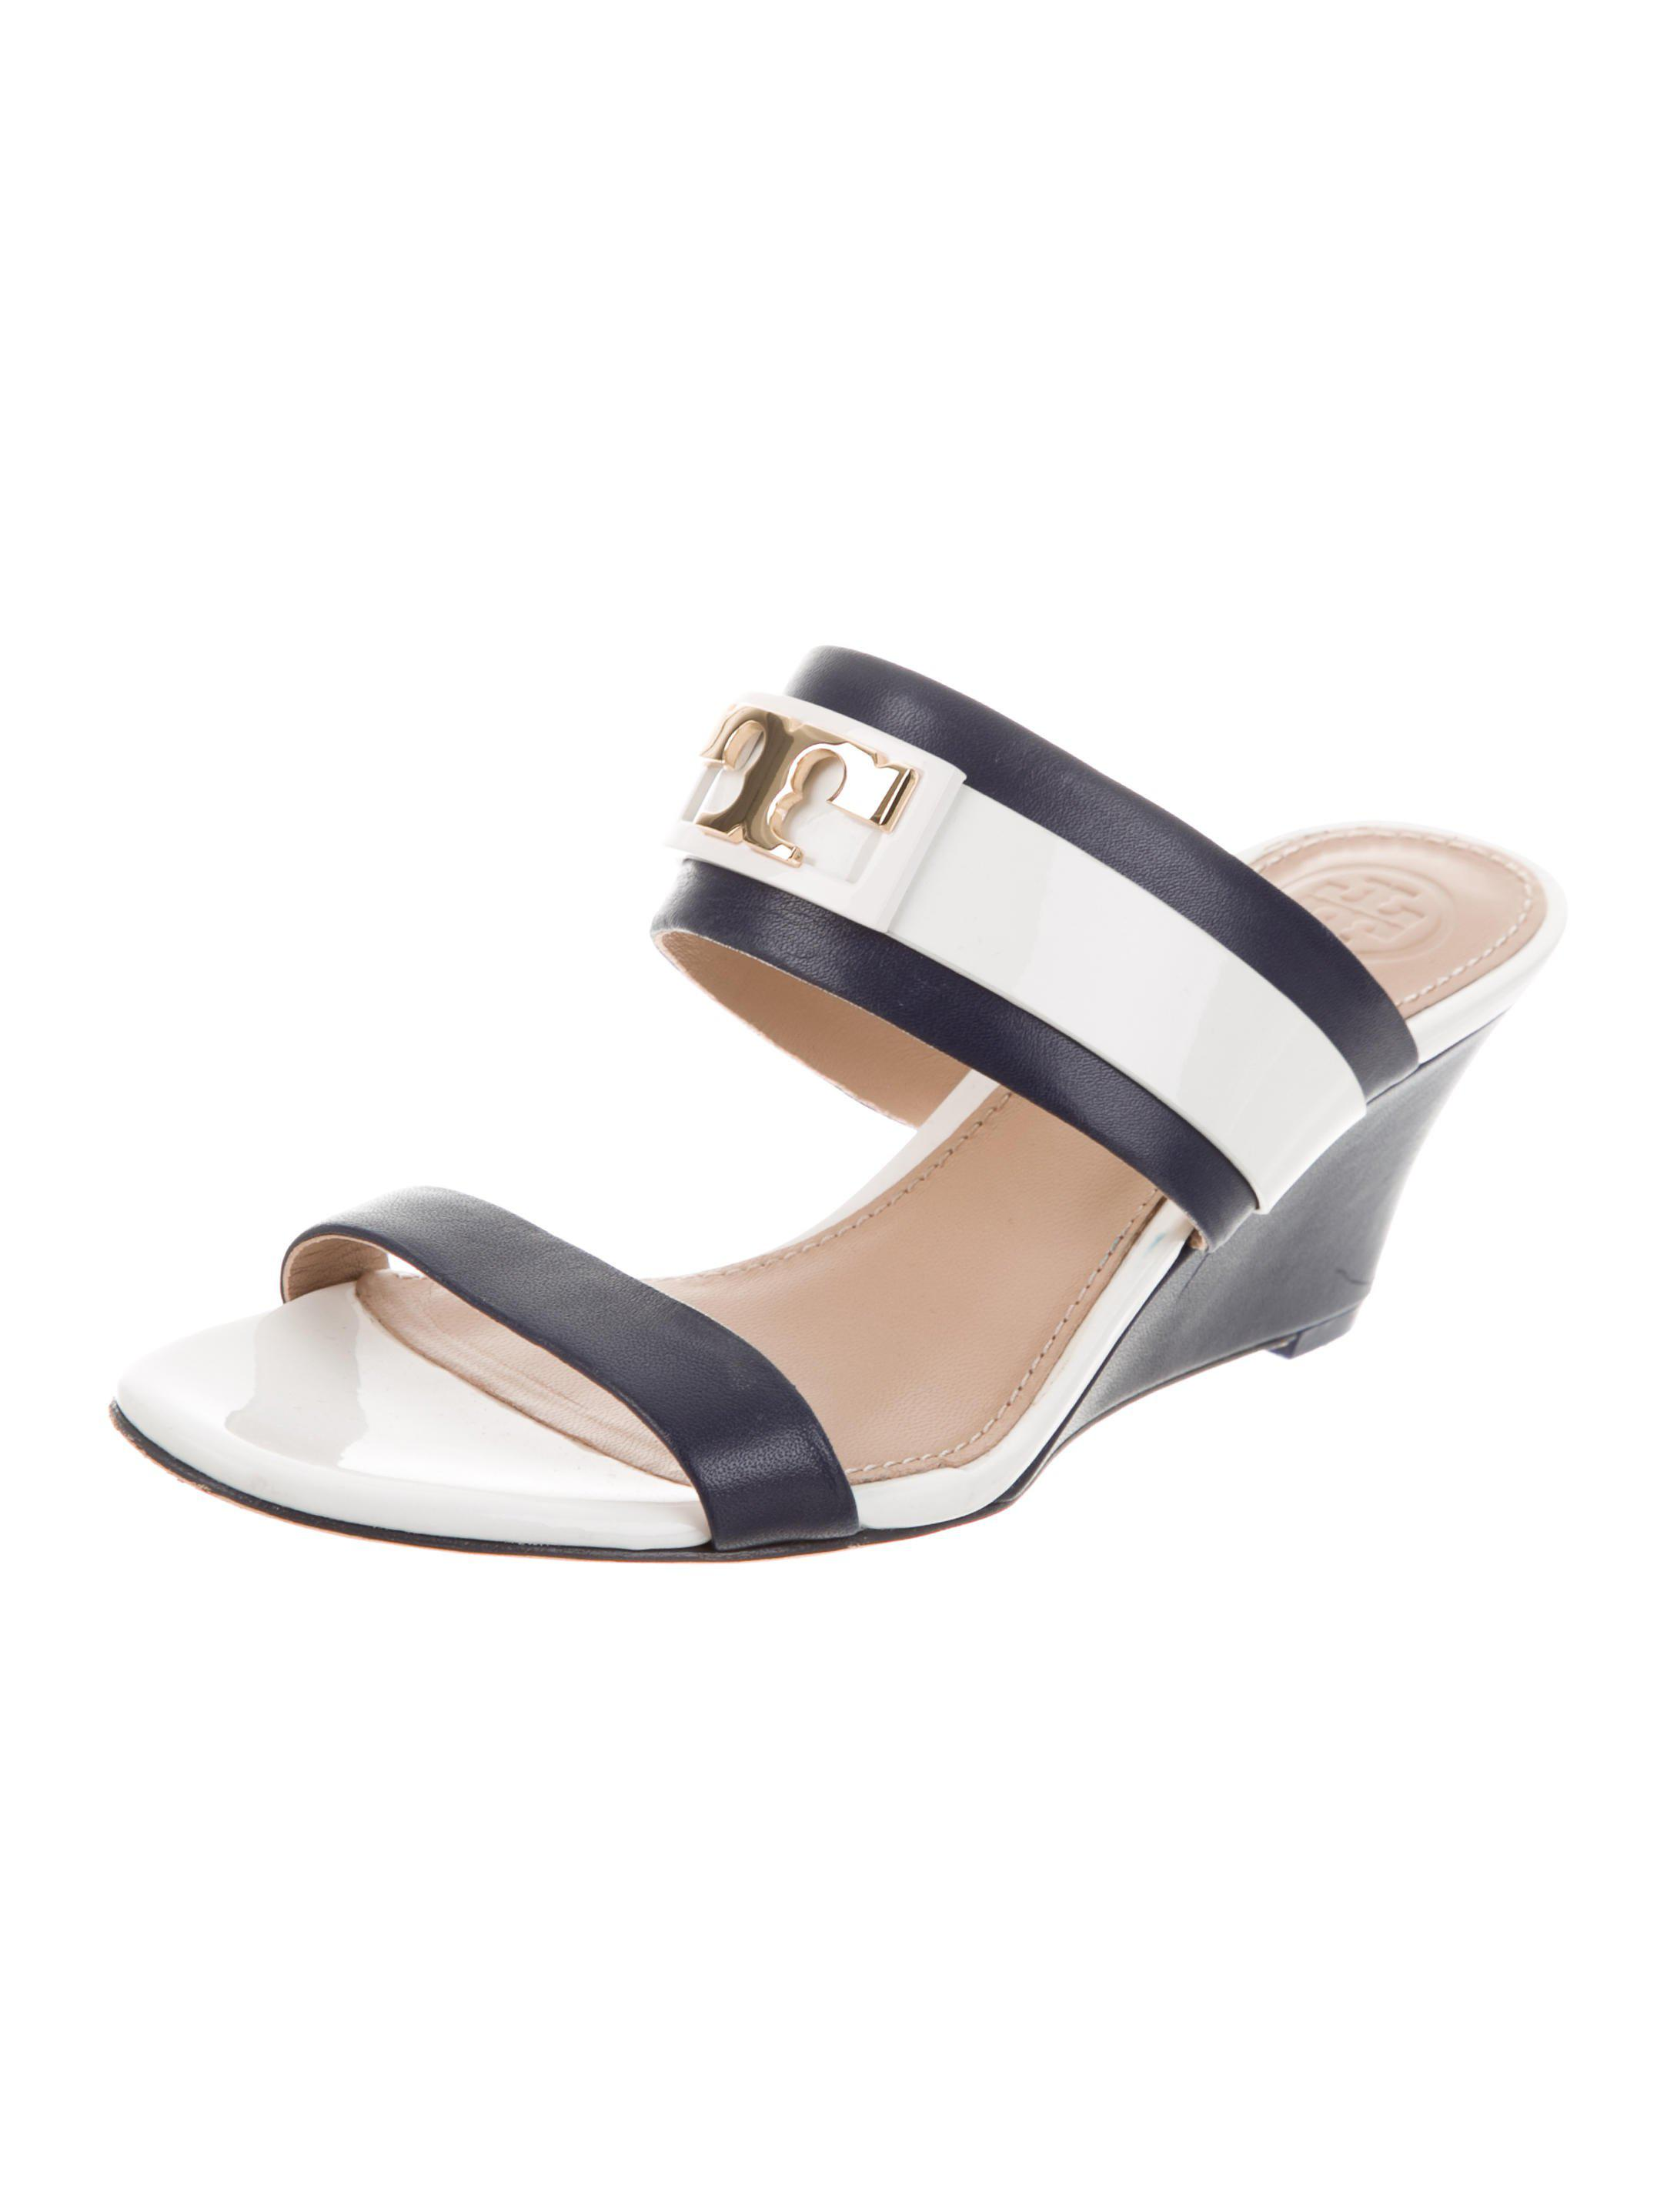 e09c6c665 Tory Burch - Metallic Leather Wedge Mules Navy - Lyst. View fullscreen